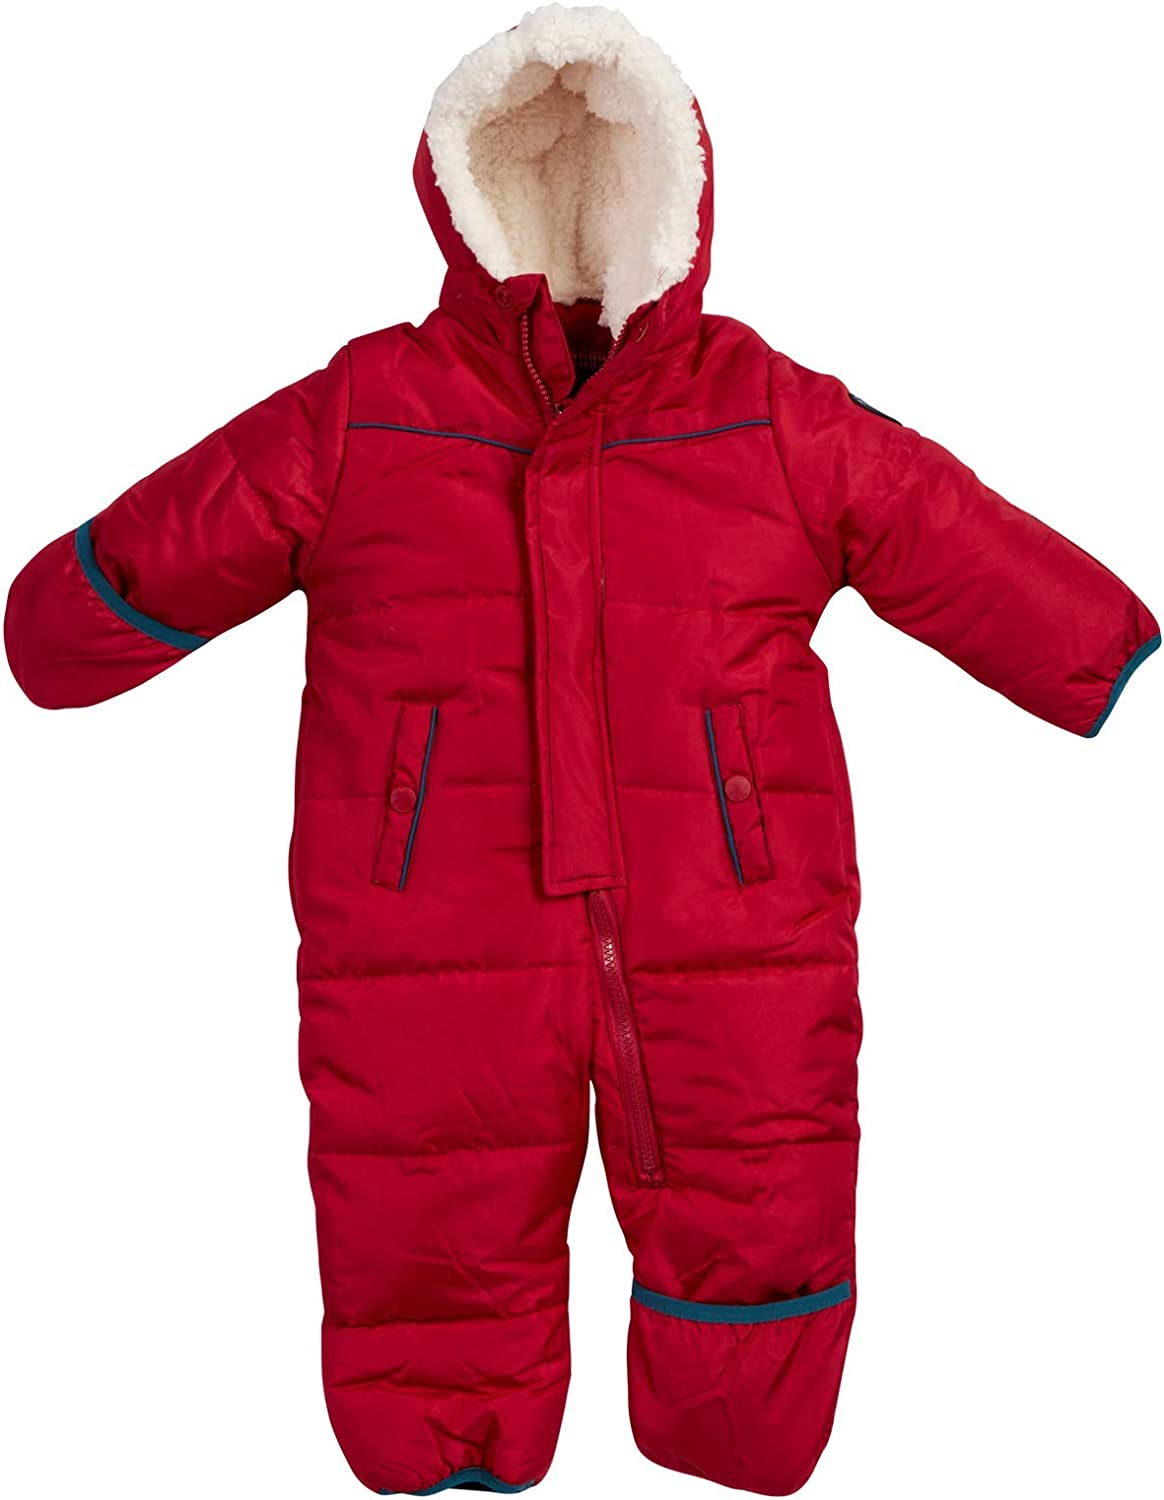 Ben Sherman Baby Boys Bubble Snowsuit Polar Fleece Lined Pram with Sherpa Fur Hood Newborn//Infant